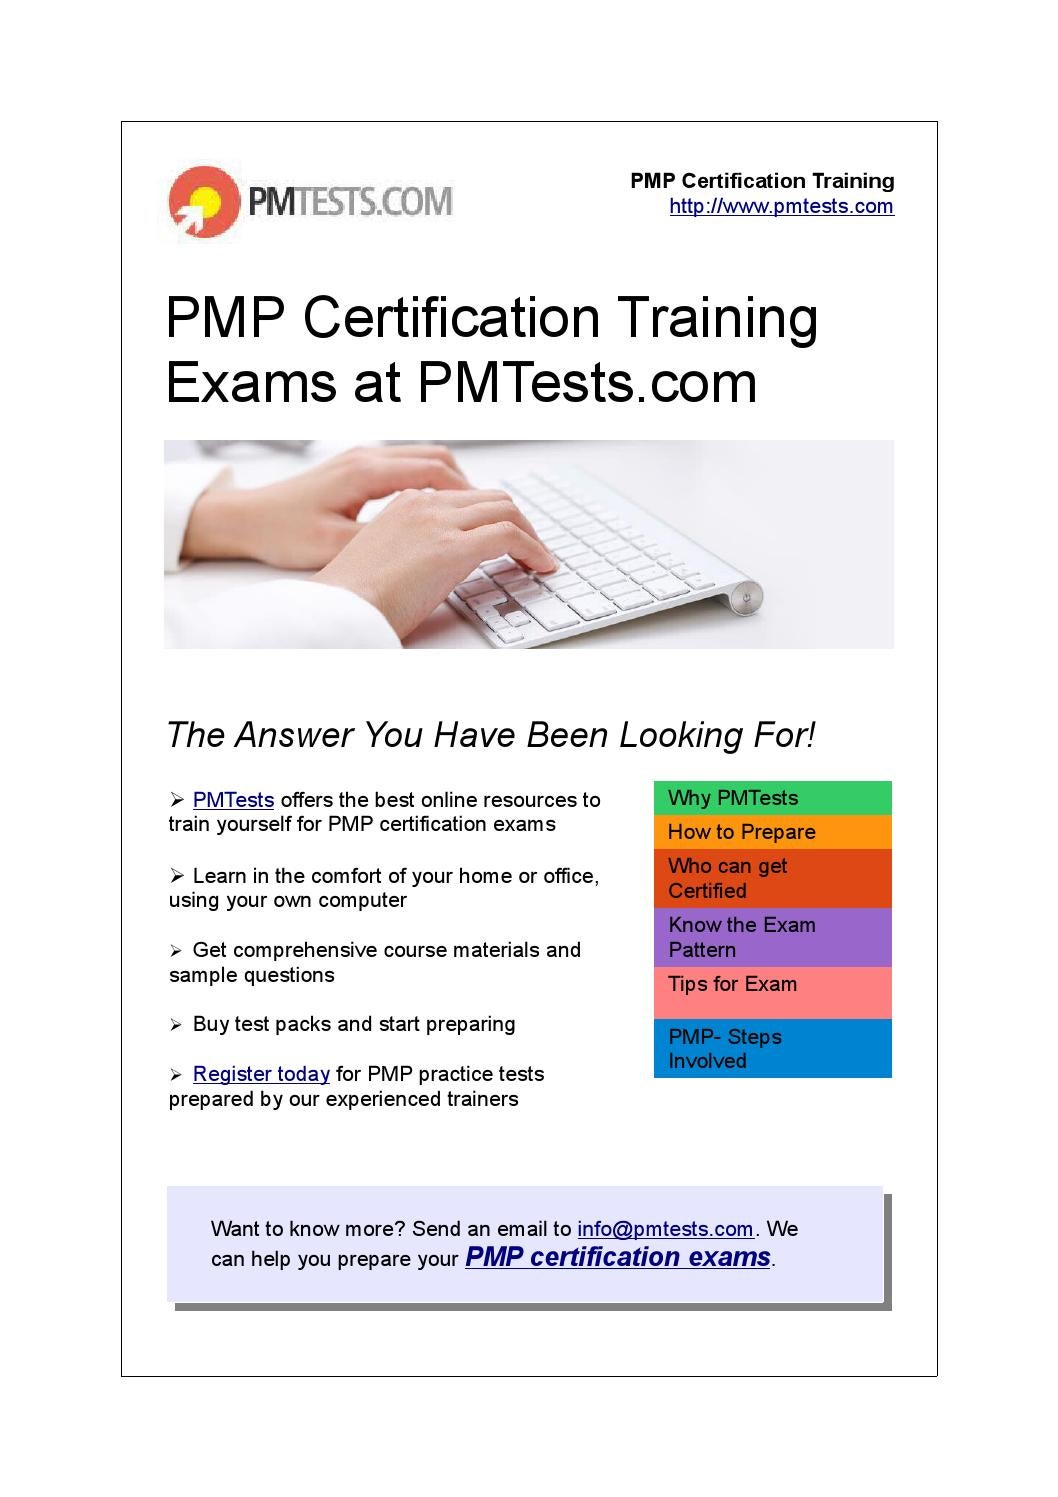 Pmp Certification Training Exams At Pmtests By Pmtests Issuu